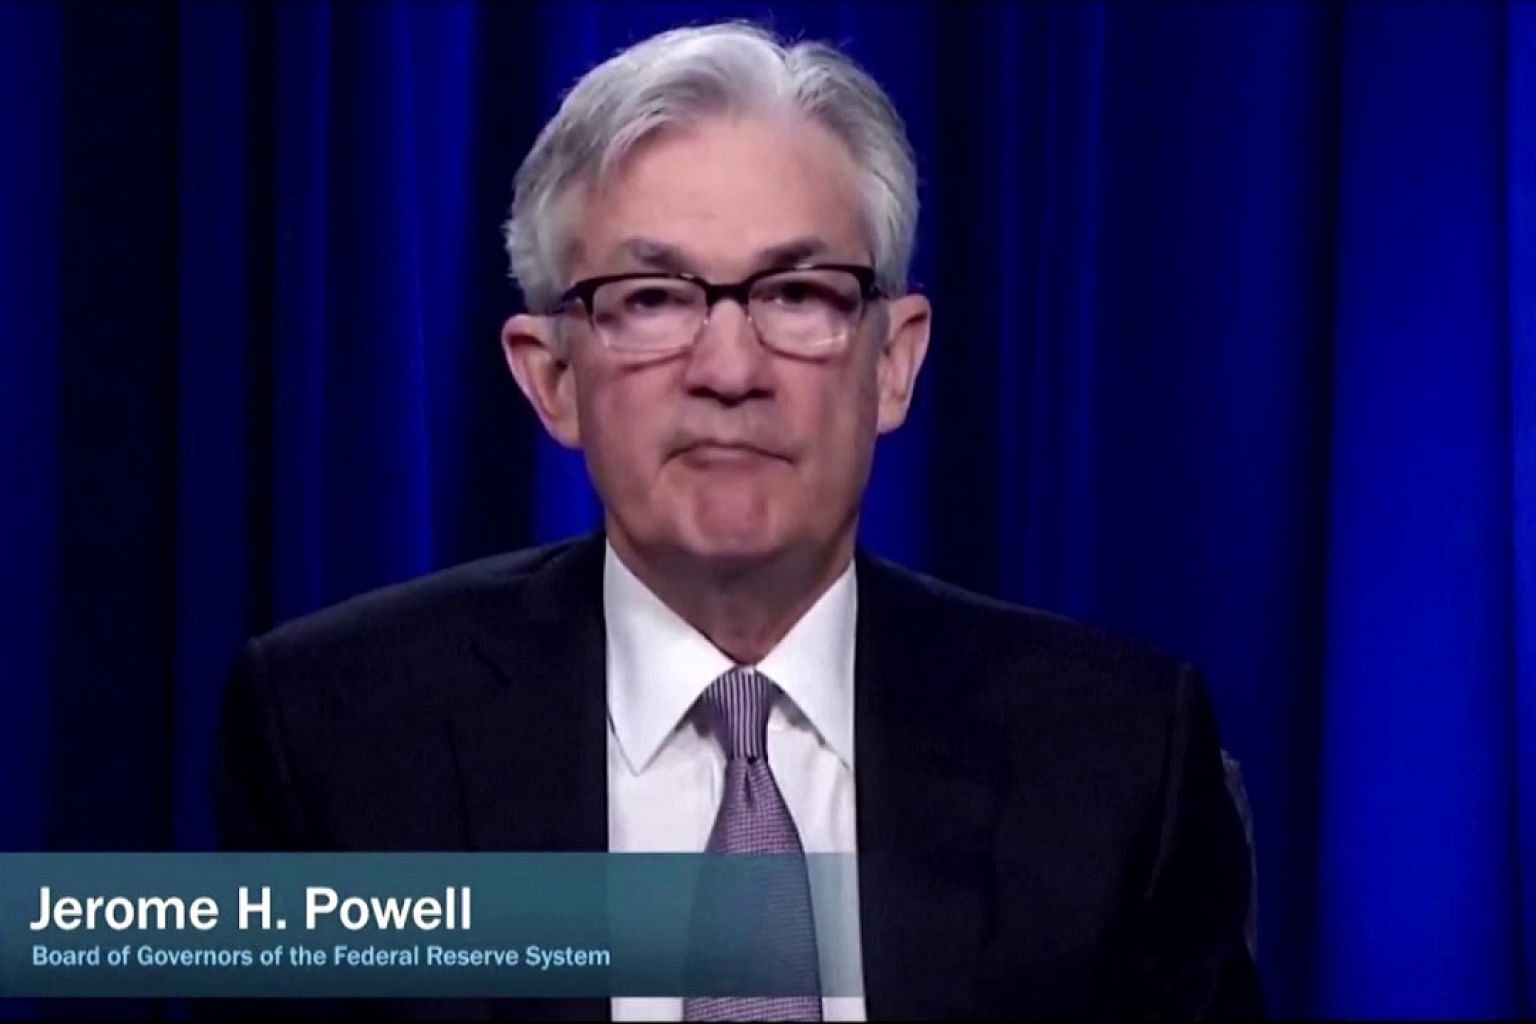 Fed's Jerome Powell warns economic recovery will be slow